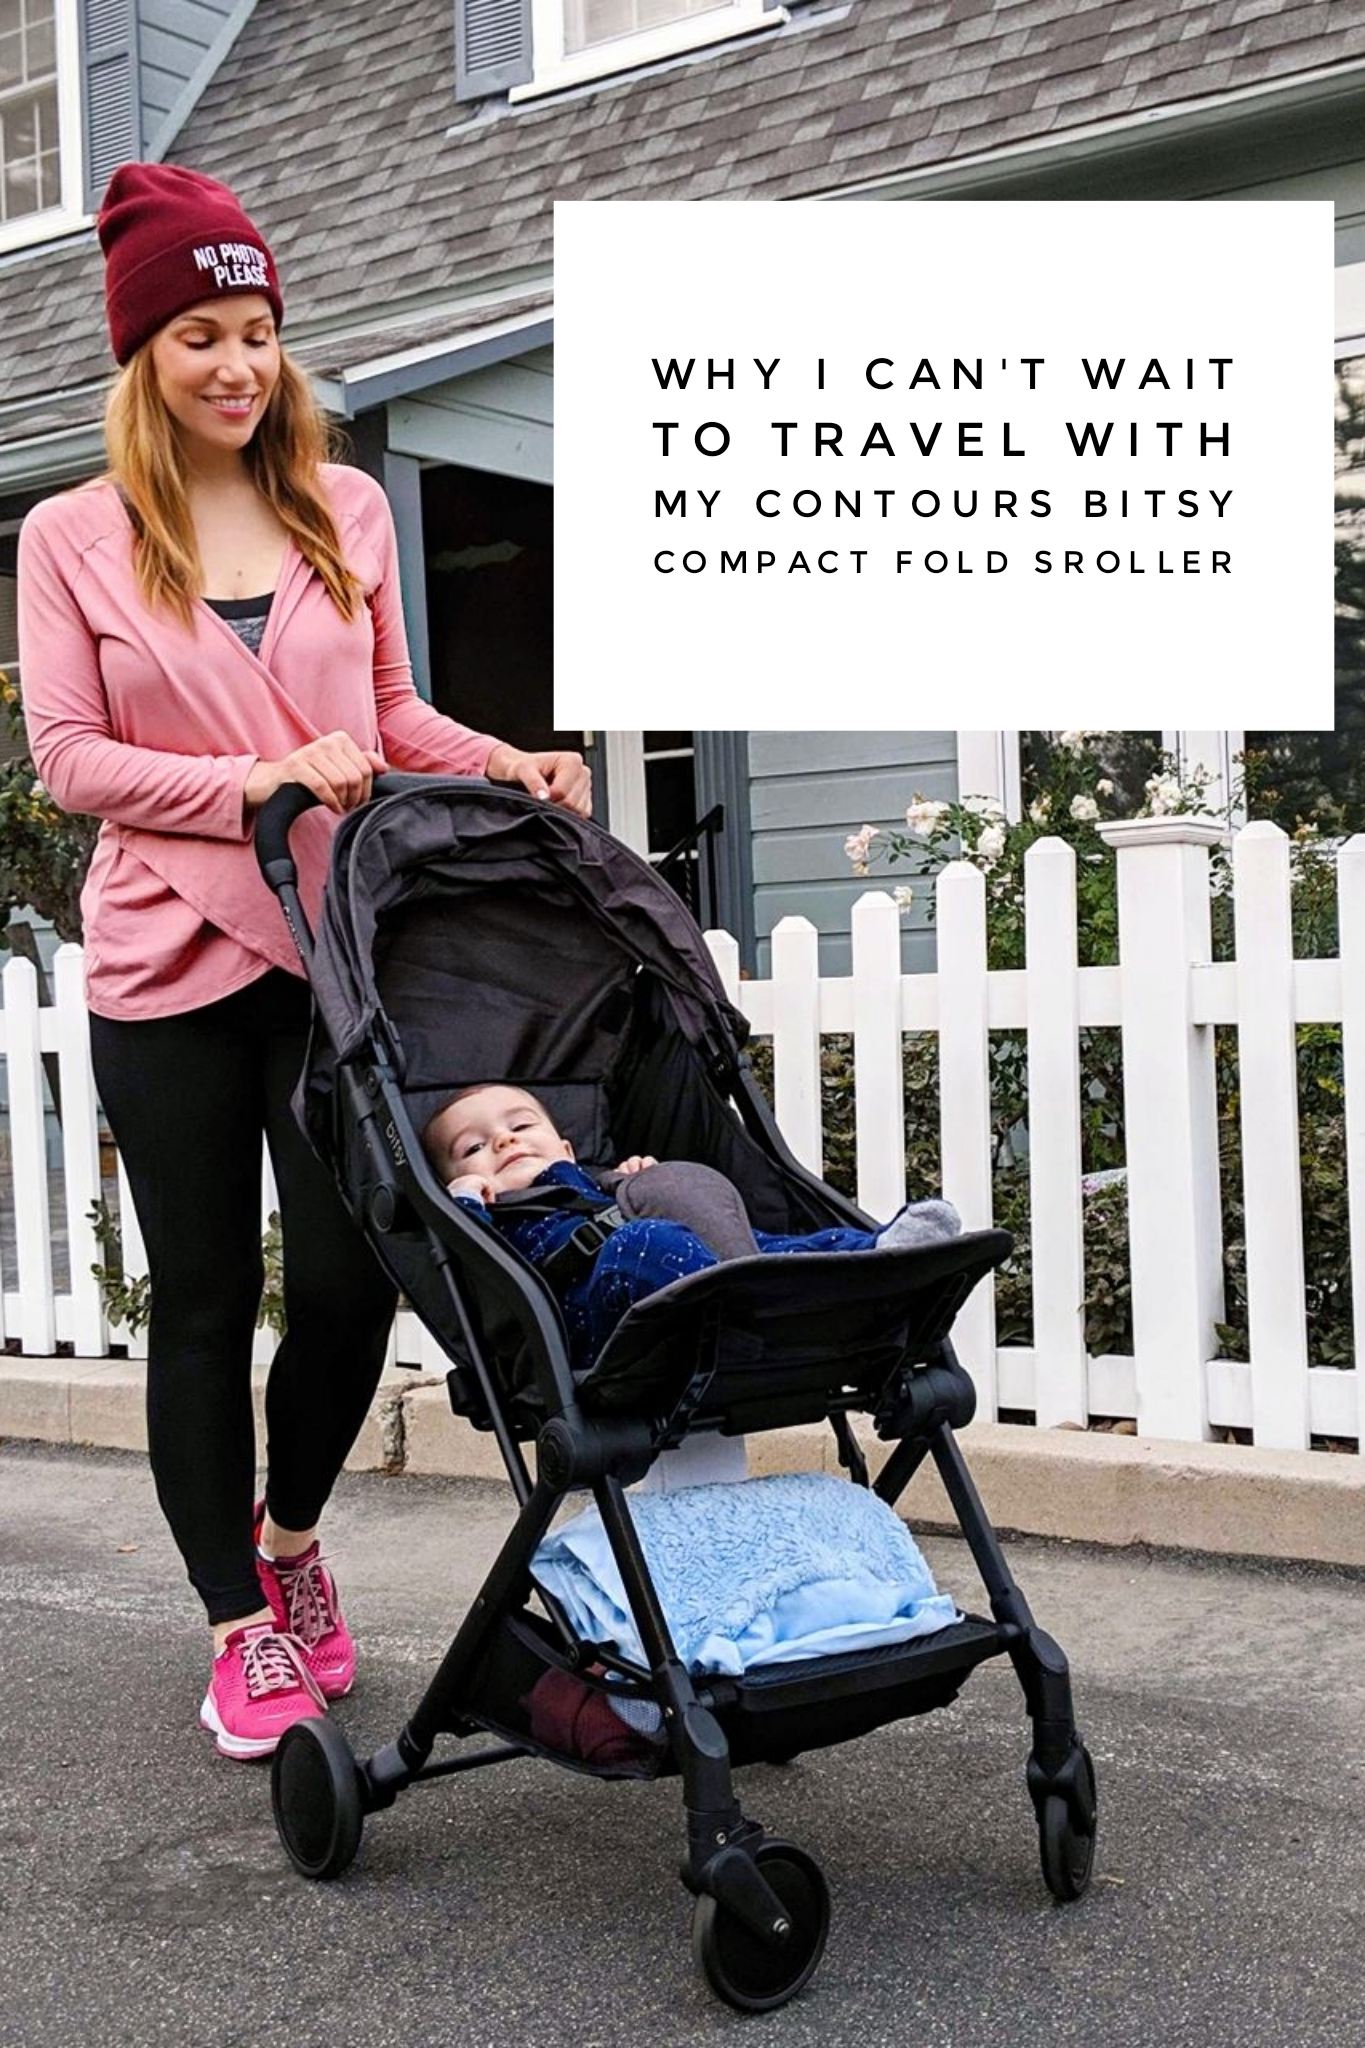 Why I Can't Wait to Travel With My Contours Bitsy Compact Fold Stroller